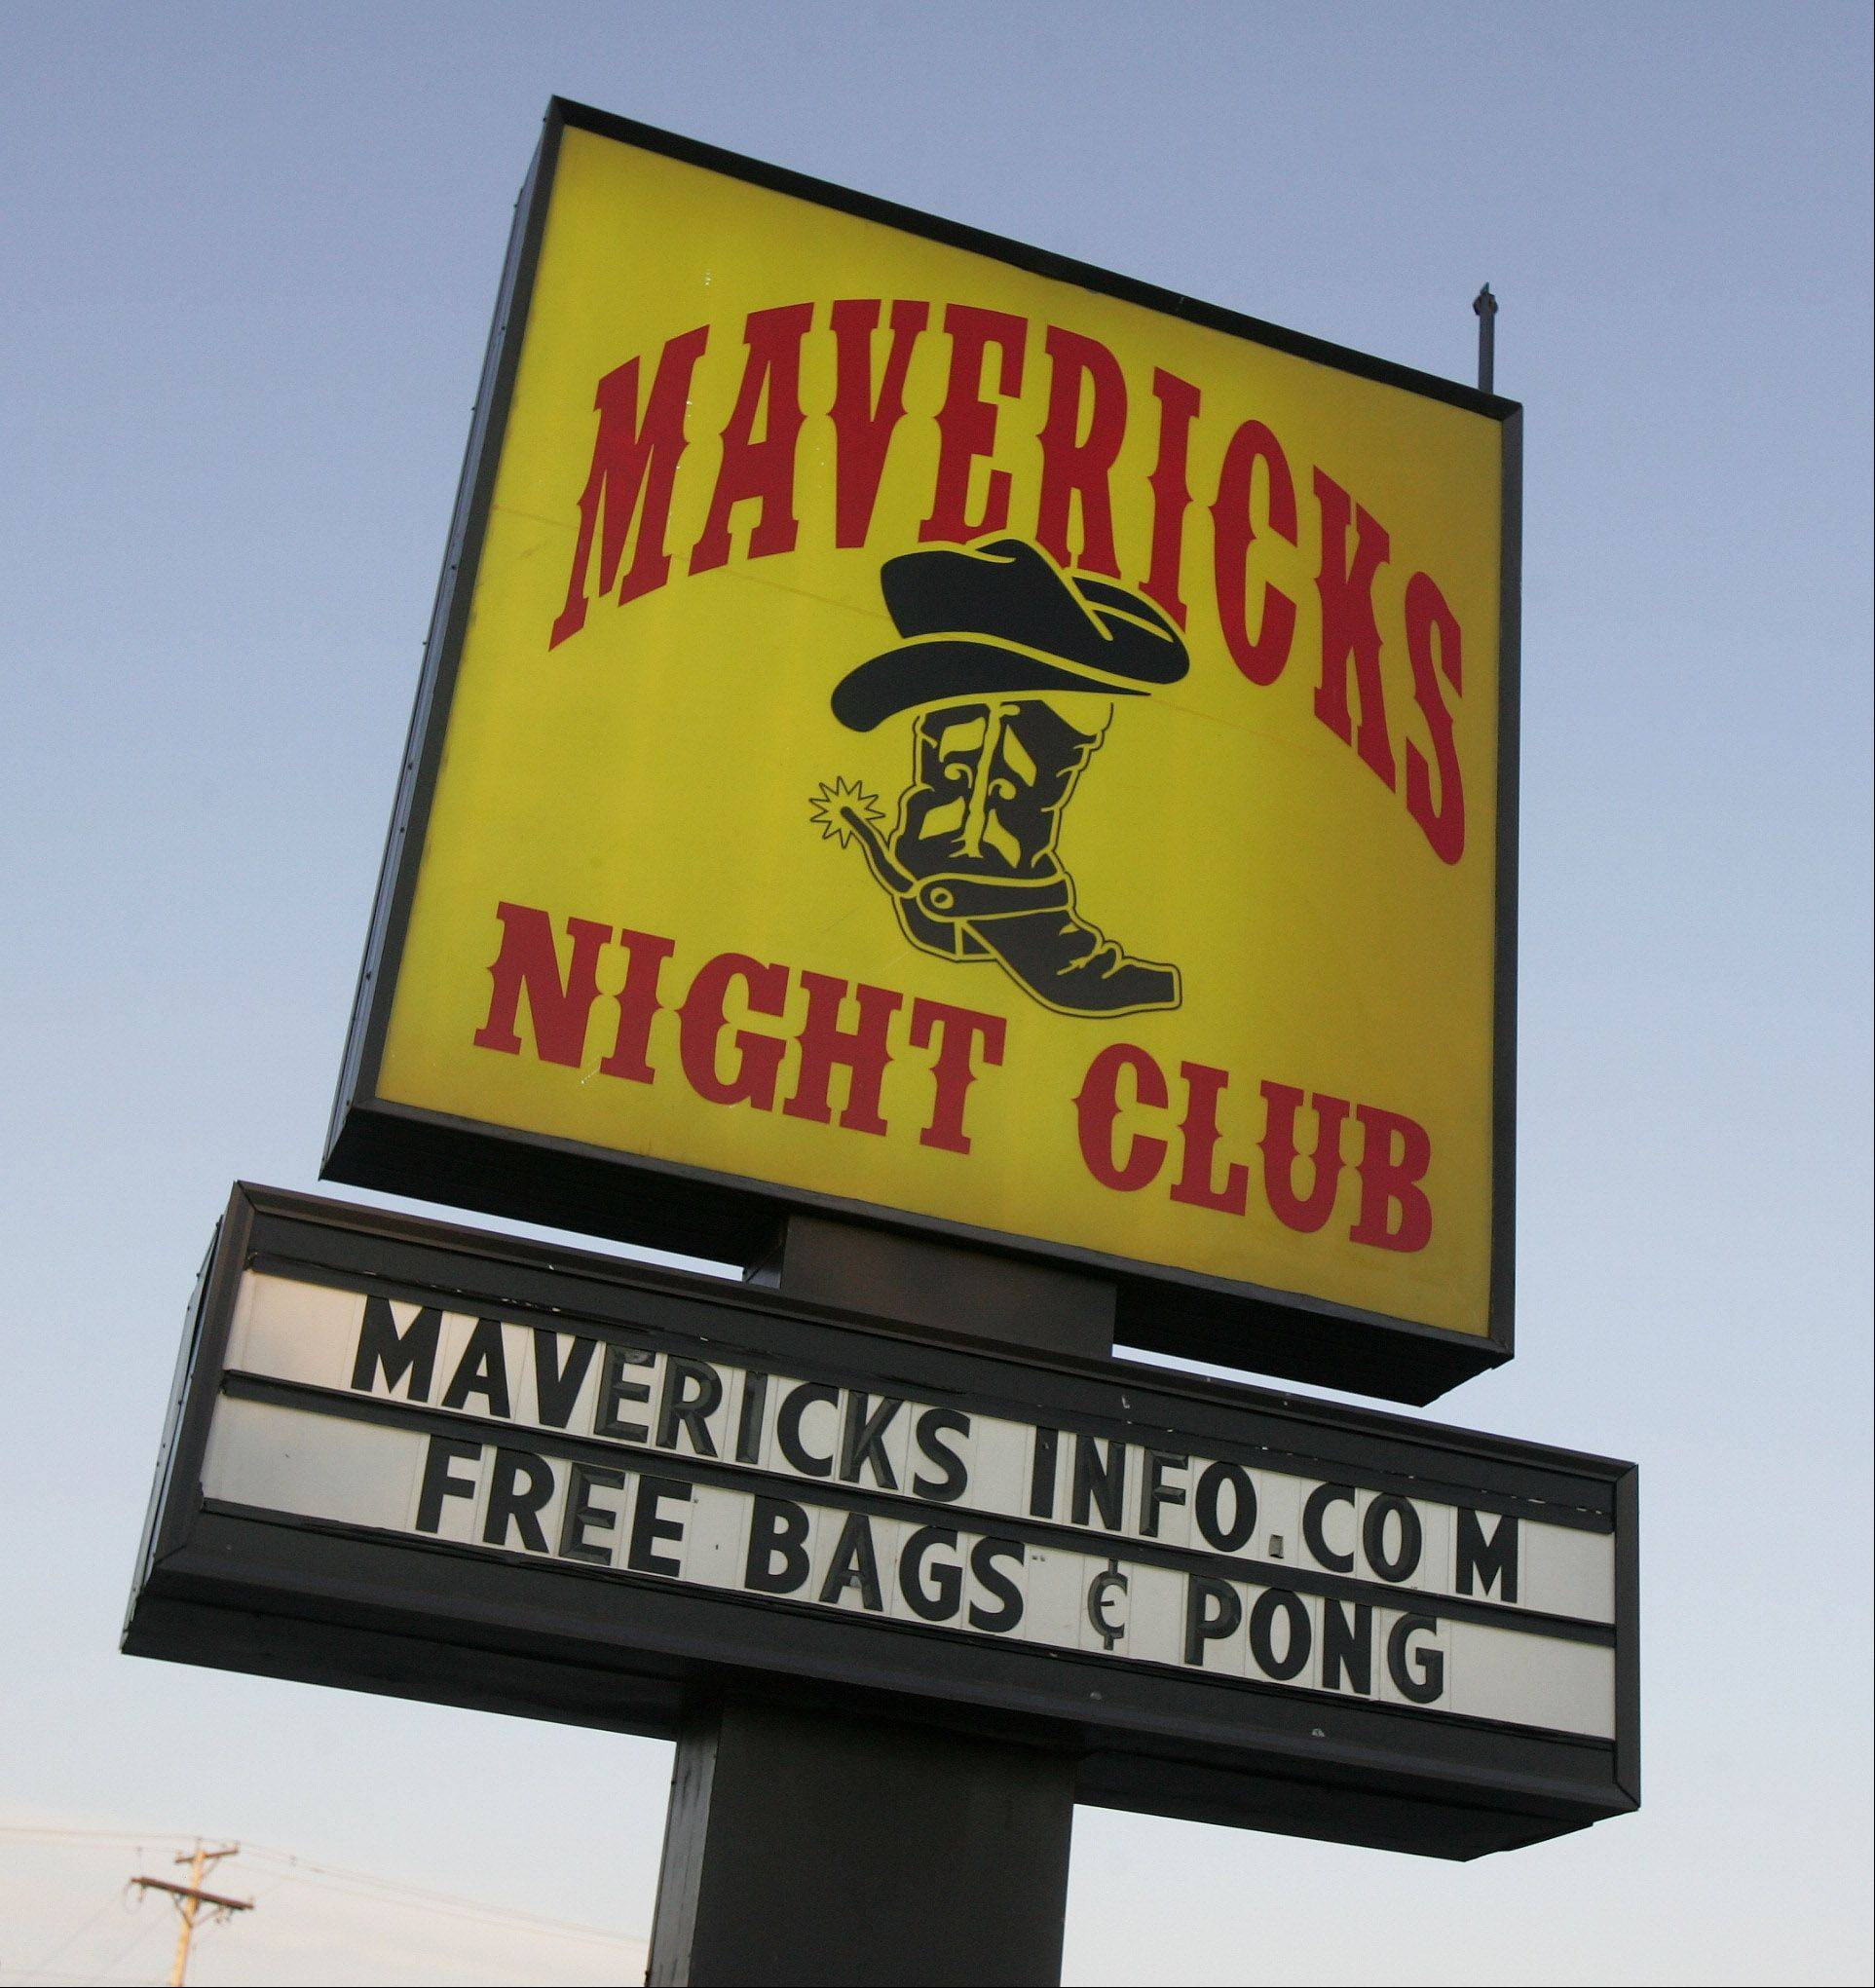 Mavericks offers games as well as country dancing.